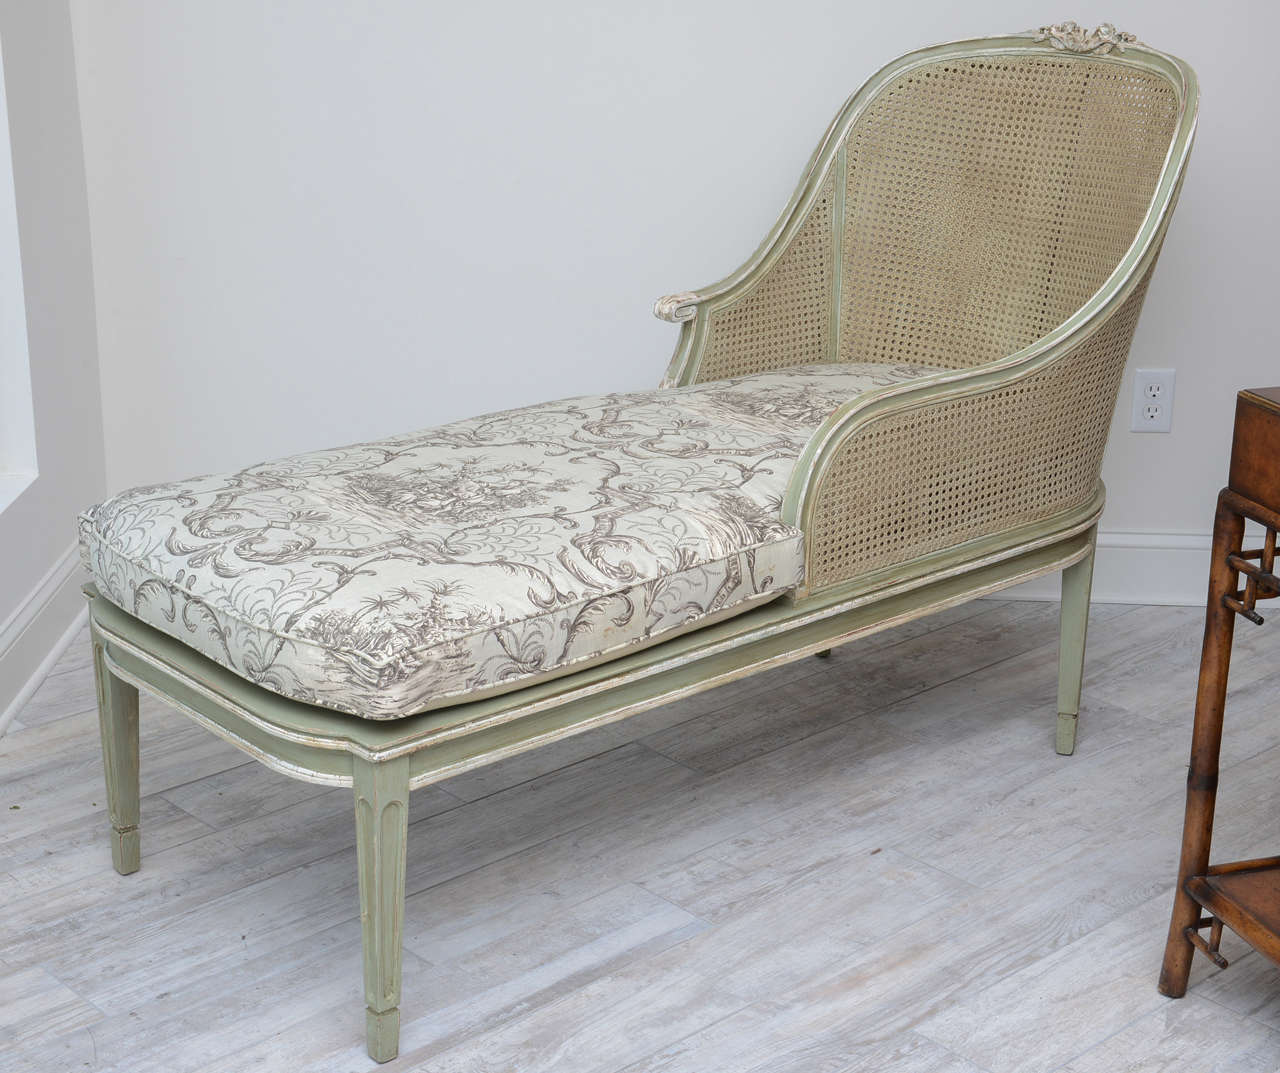 Louis xvi style french caned chaise lounge for sale at 1stdibs - Chaise style louis xvi moderne ...